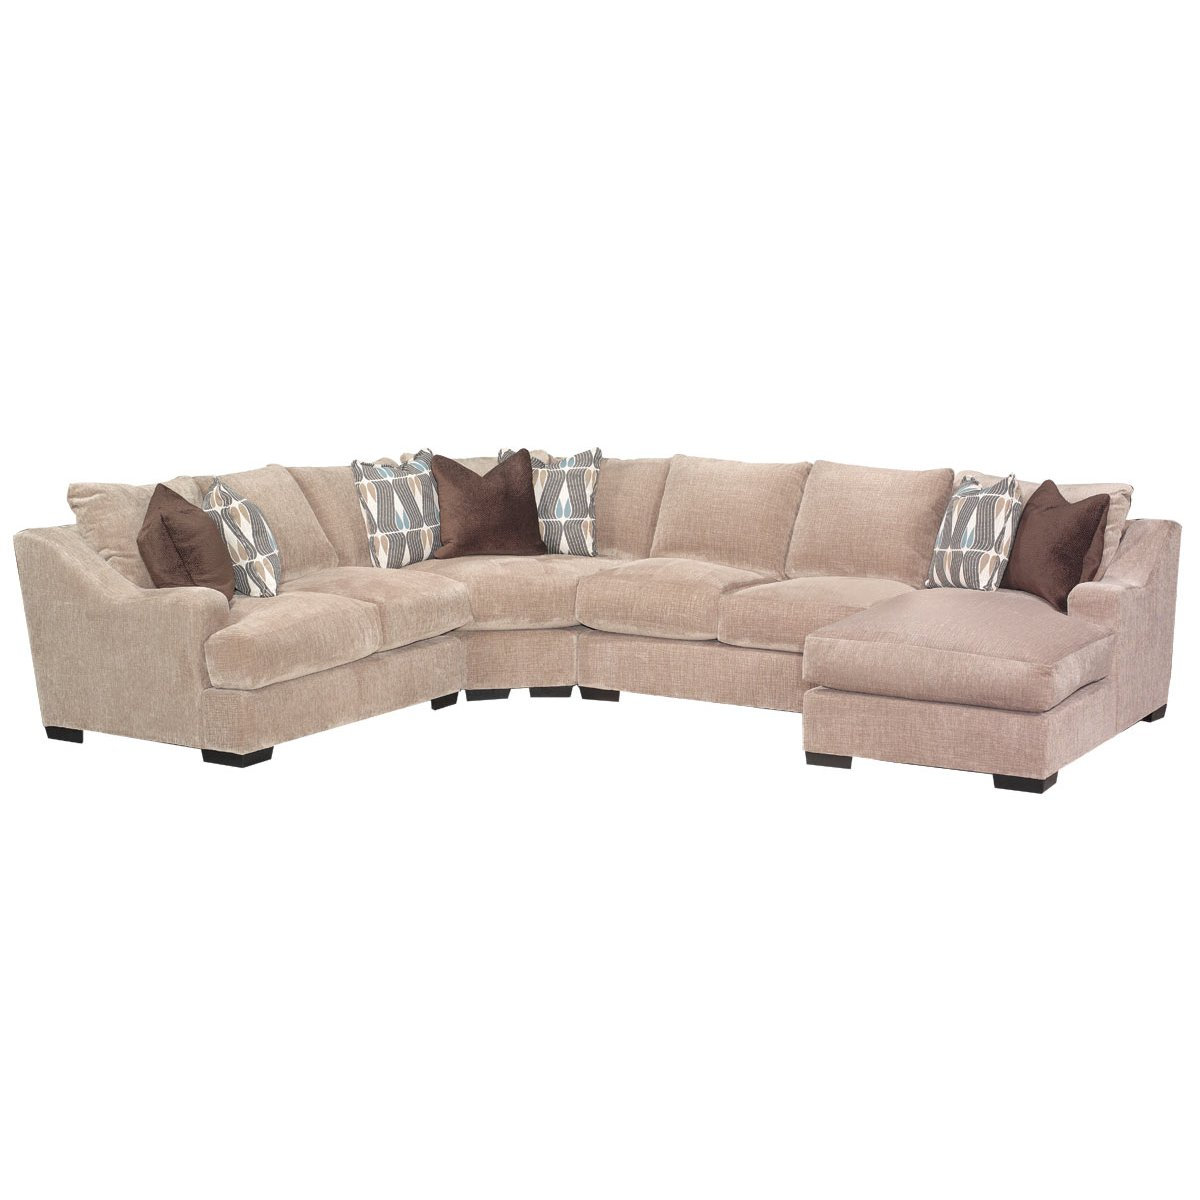 precedent with products sofa width threshold height trim sectional chaise planning b design item urban piece